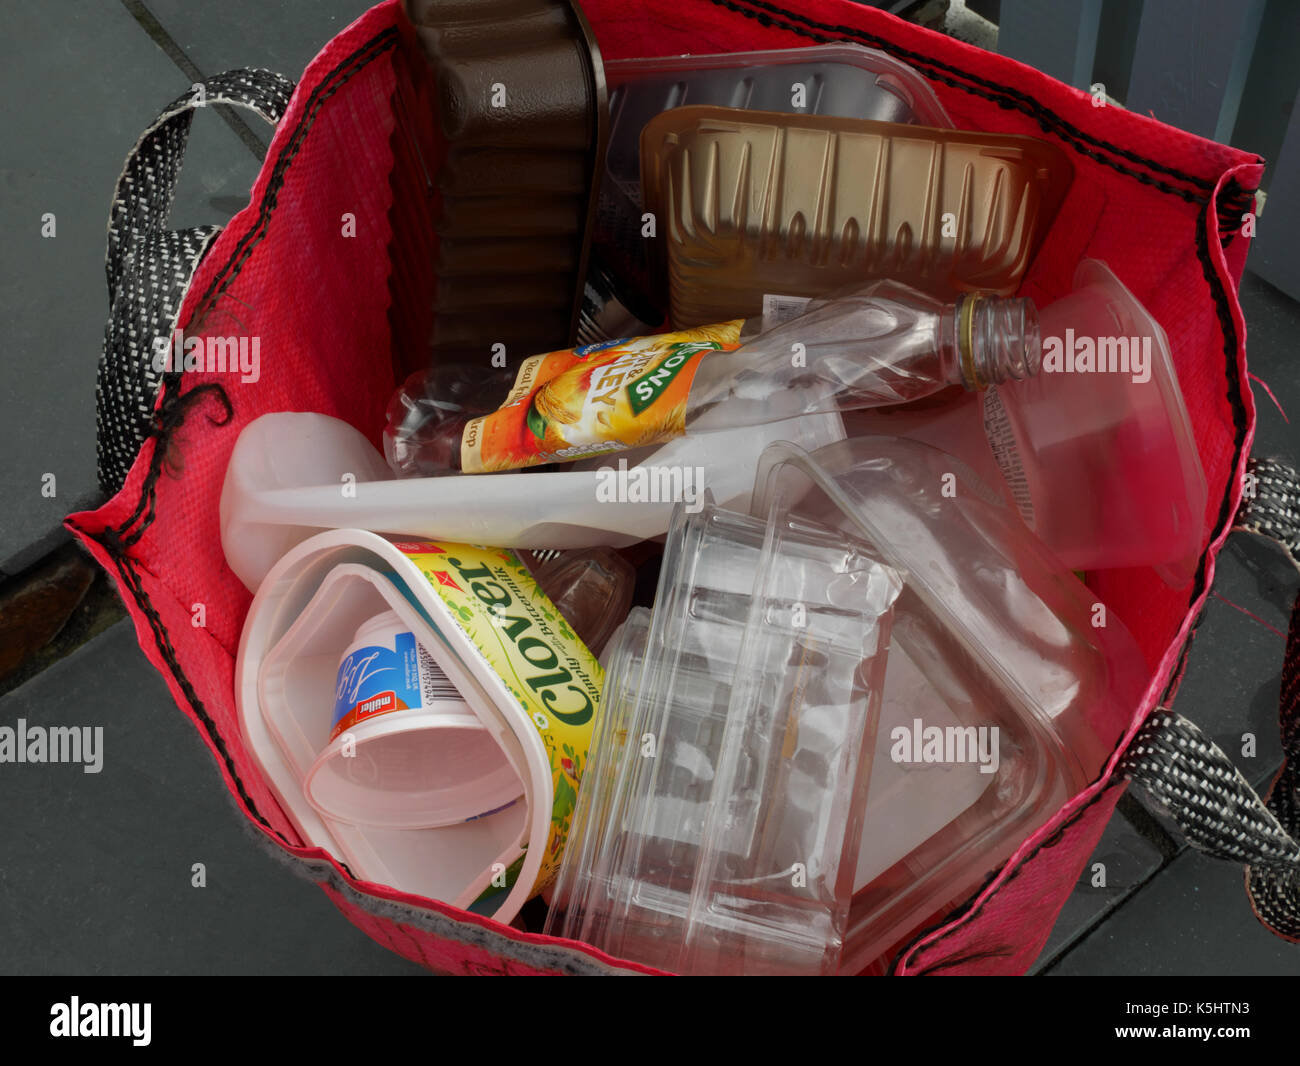 Recycling plastic containers for household collection. Stock Photo